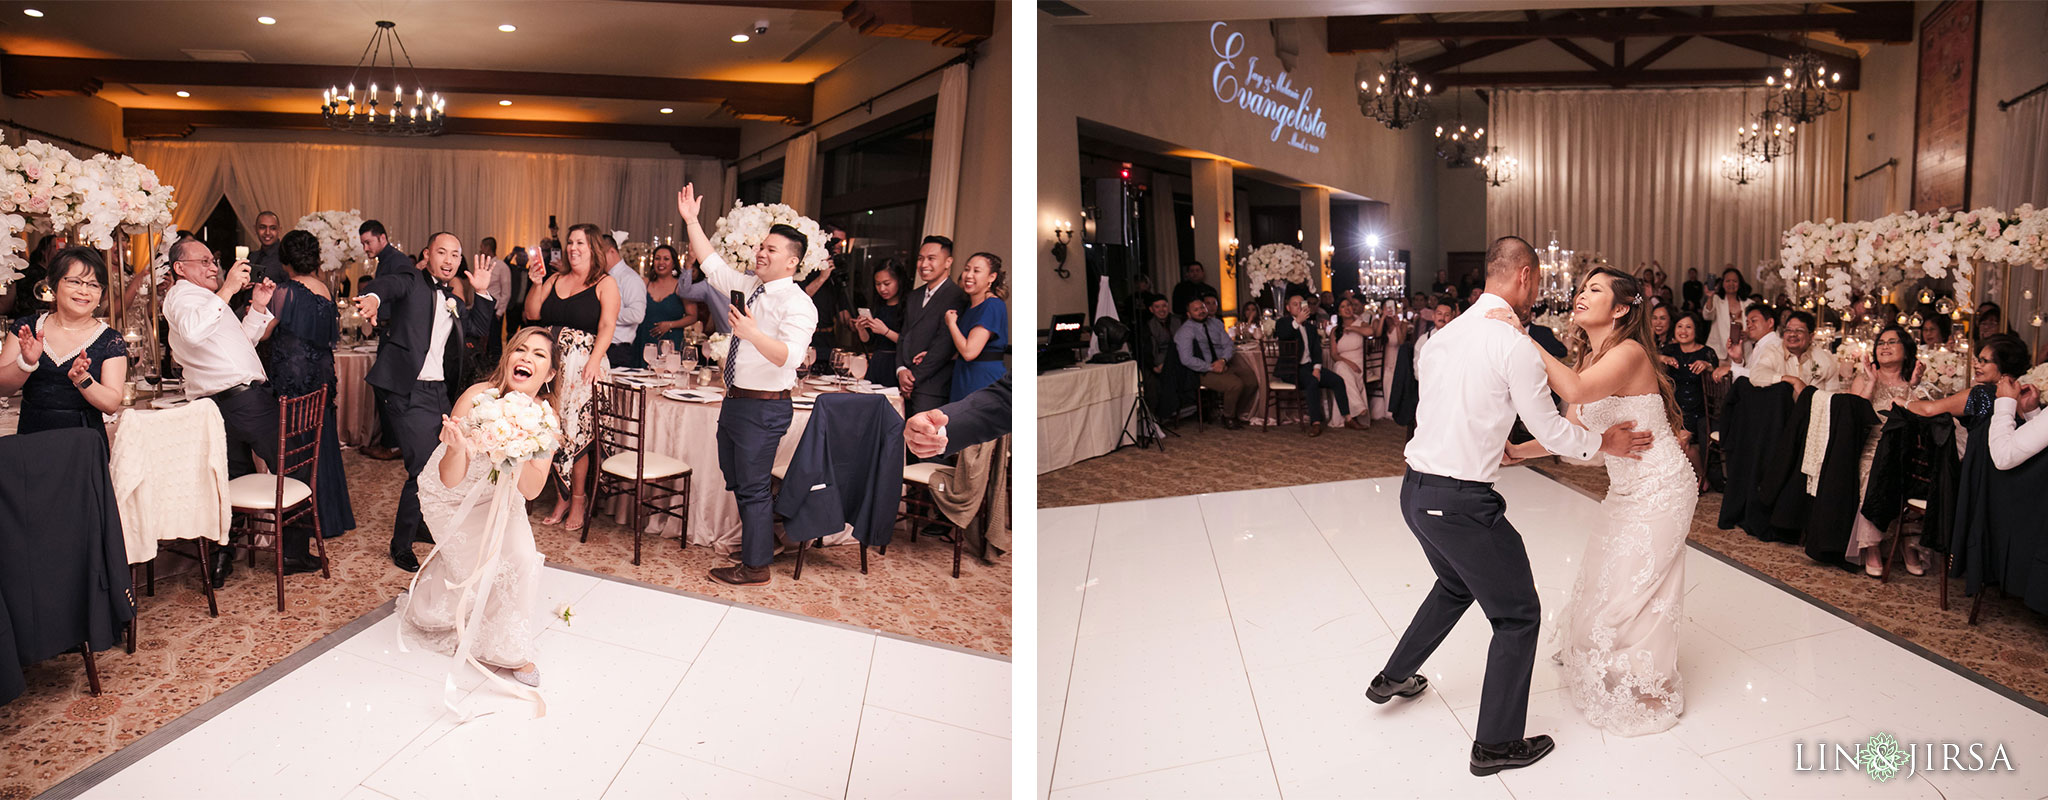 27 Bel Air Bay Club Pacific Palisades Wedding Photography